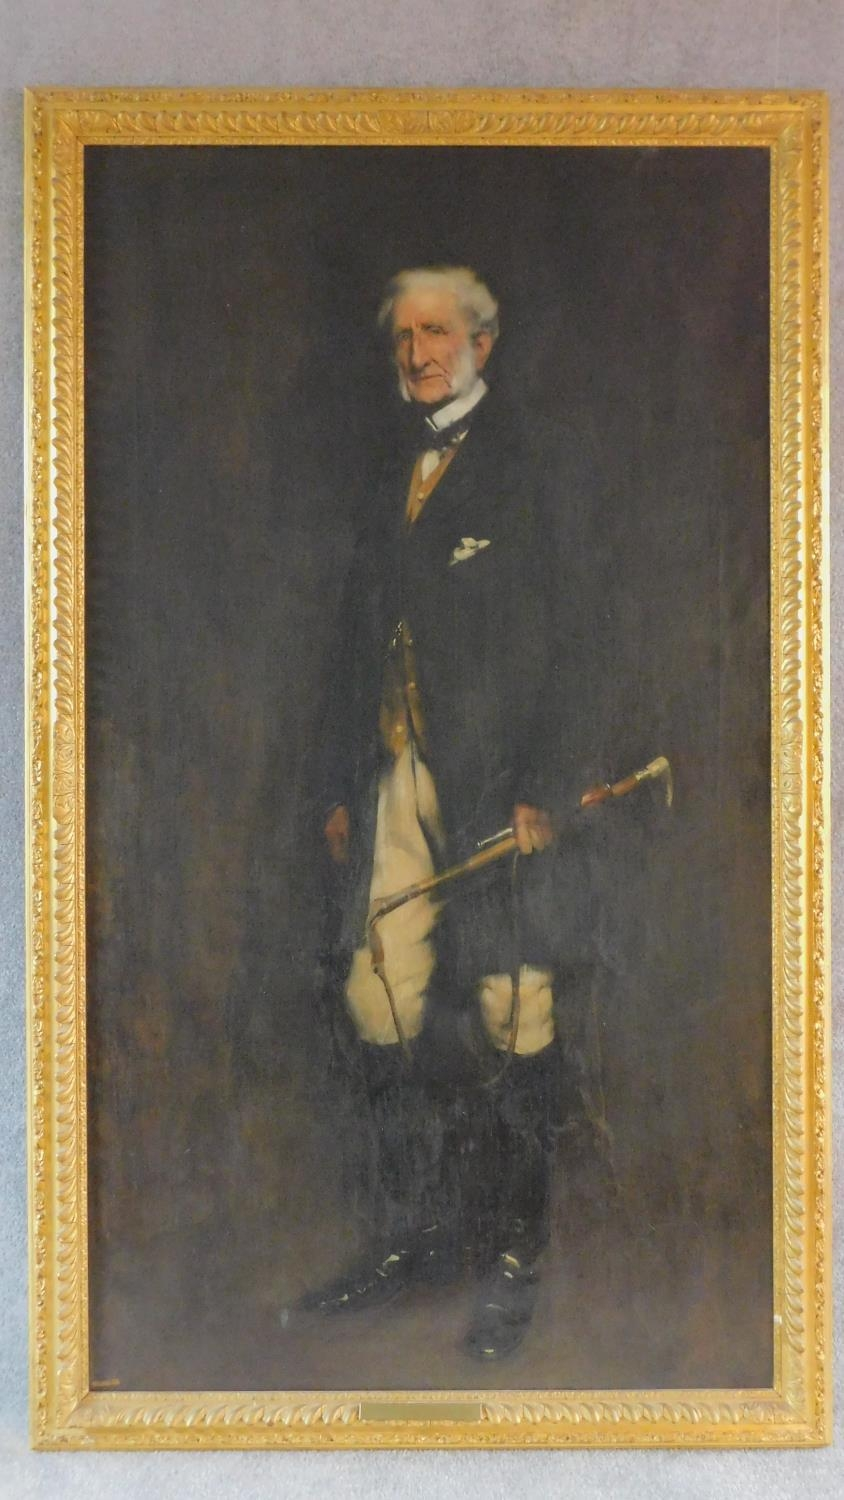 """SIR JAMES JEBUSA SHANNON R.A., R.B.A., R.H.A. 1862-1923 Henry Vigne, """"Master of the Epping Forest - Image 10 of 17"""